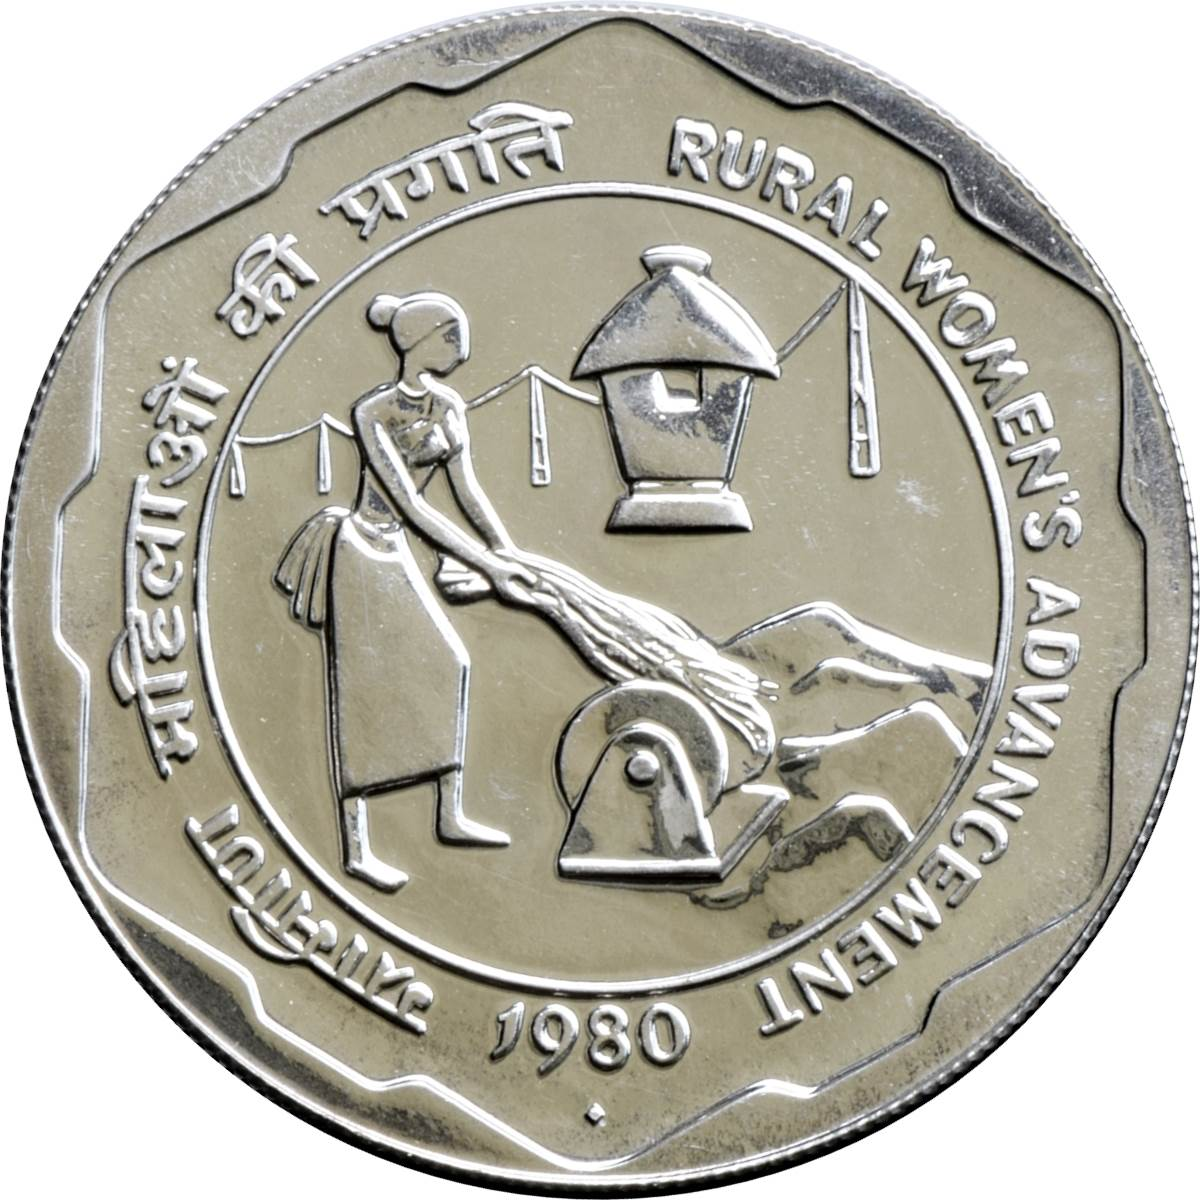 100rupees coin